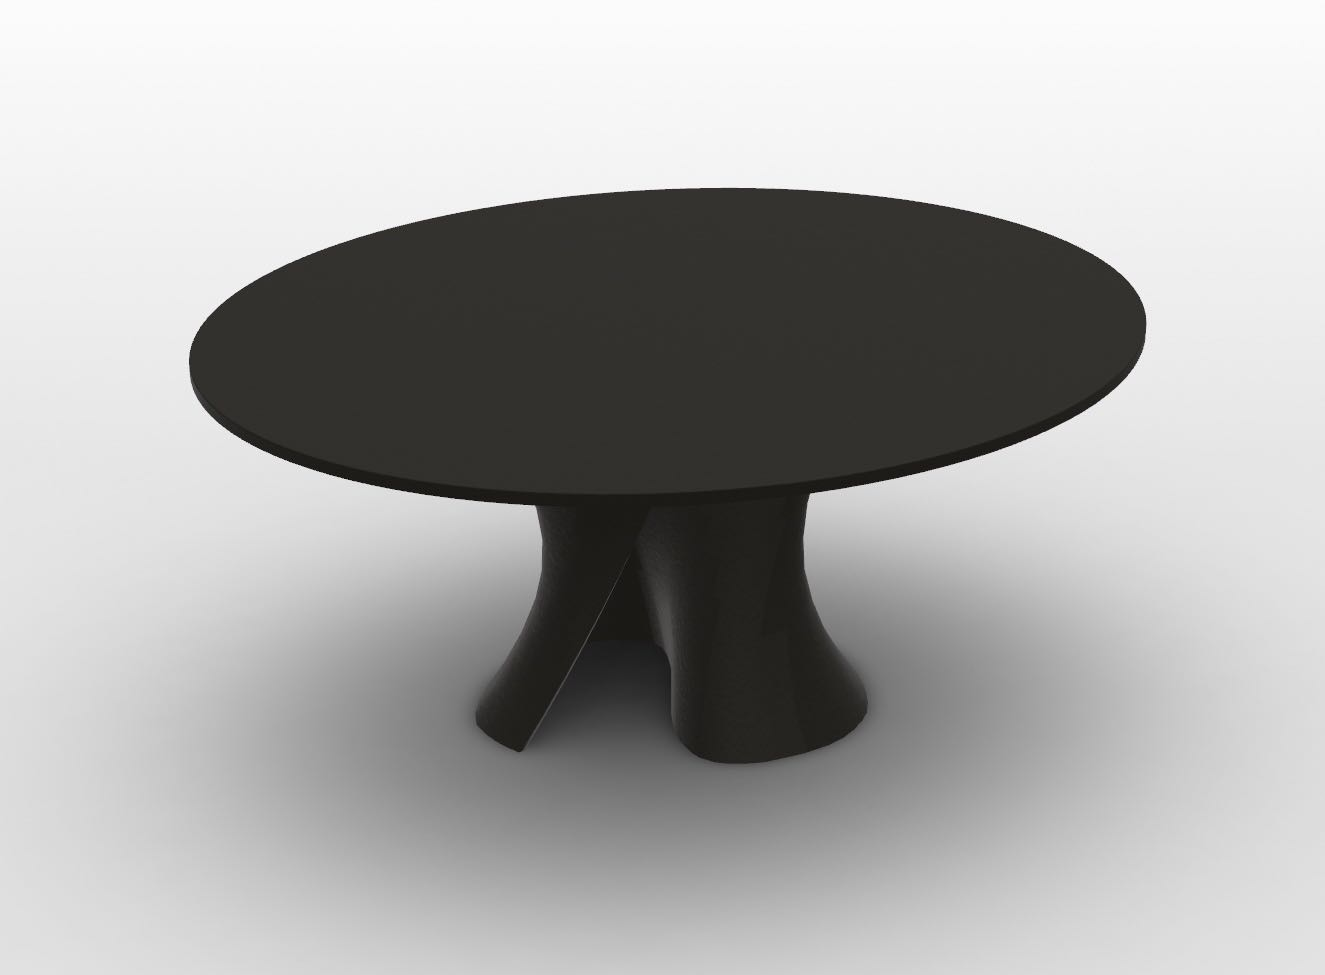 table00010,8